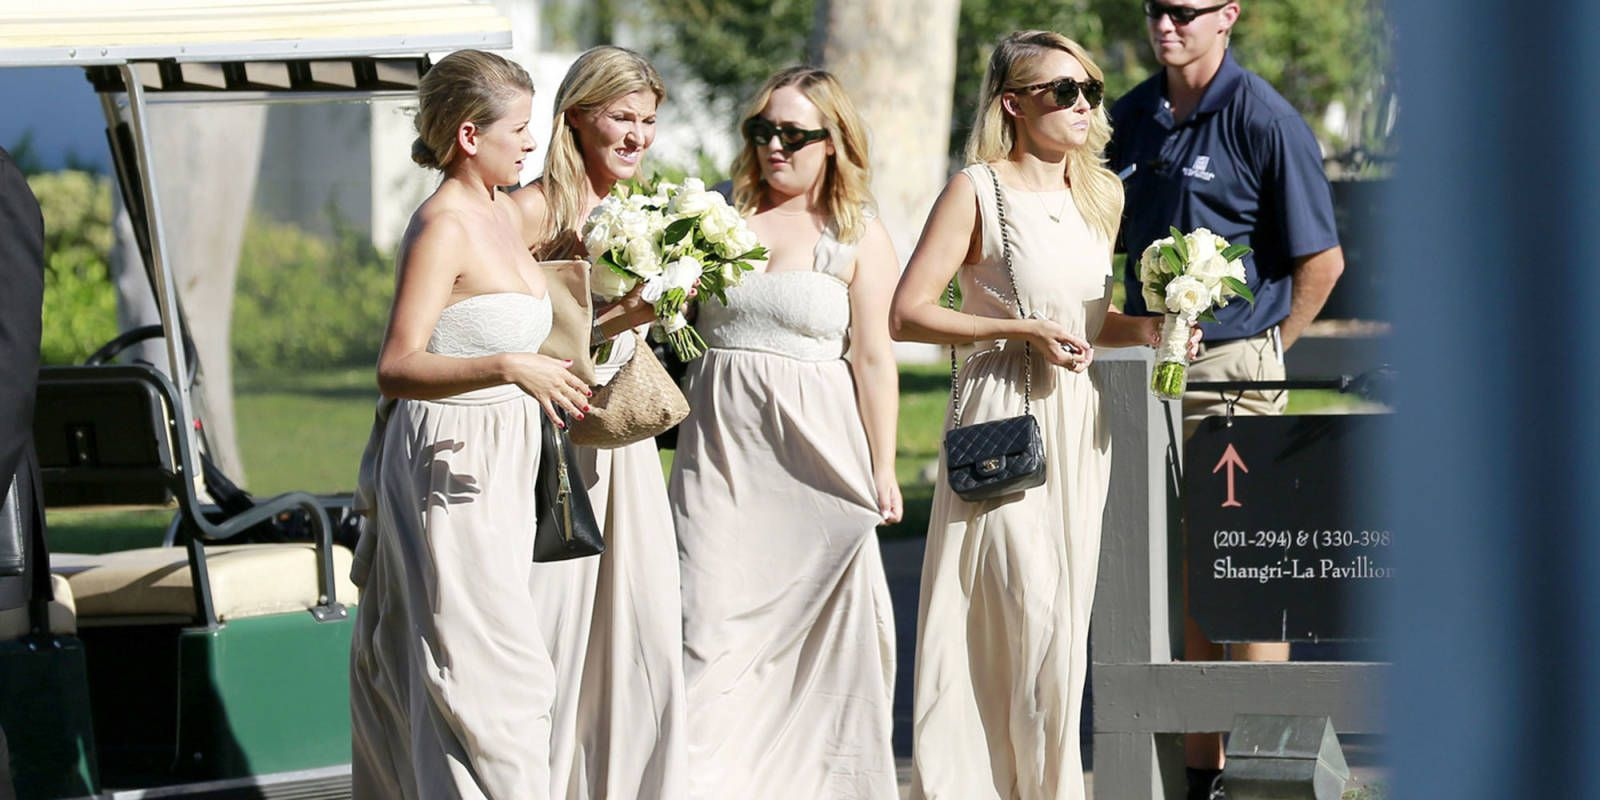 Celebrities Doing Things Celebrity Wedding Dresses Wedding Dresses Celebrity Weddings